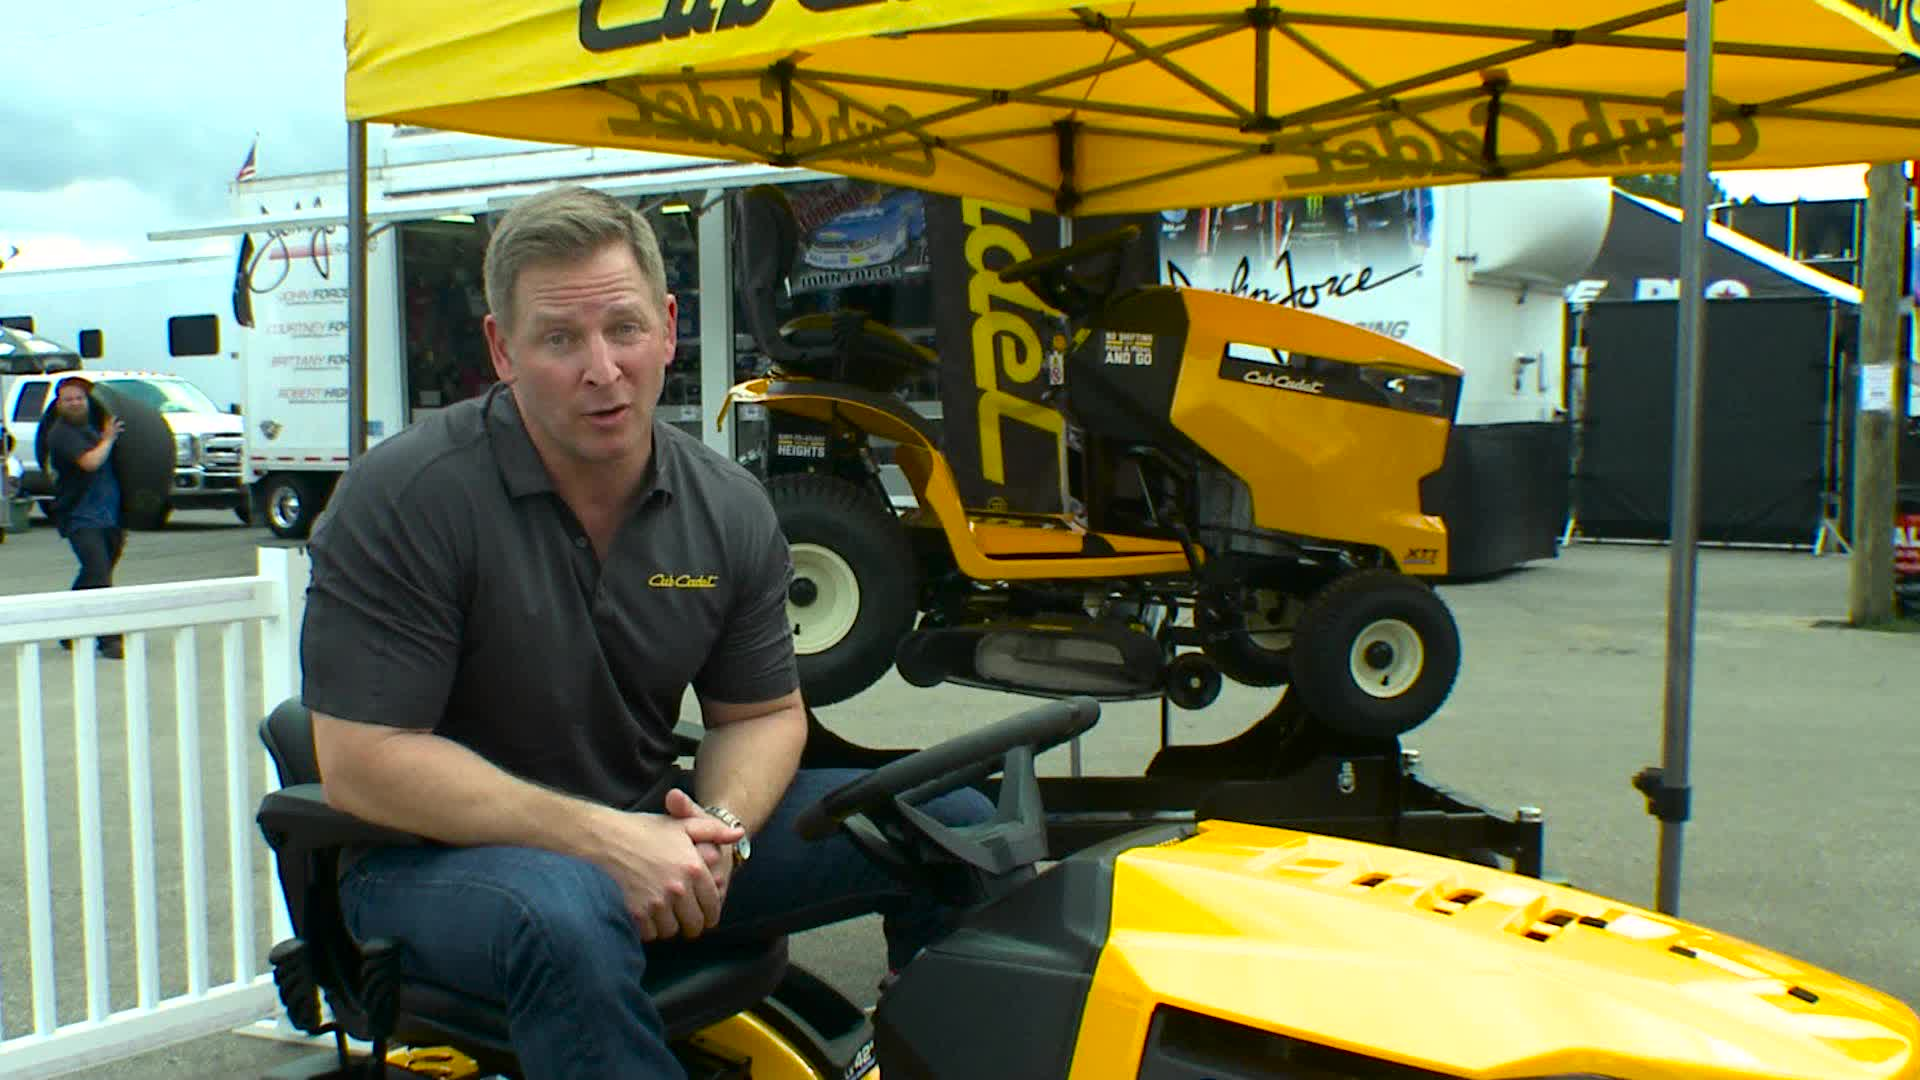 The 'Ready Set Mow Challenge' encourages homeowners to share photos of their mowing activities for a chance to win a new lawn mower at the Cub Cadet Strongsville Experience.